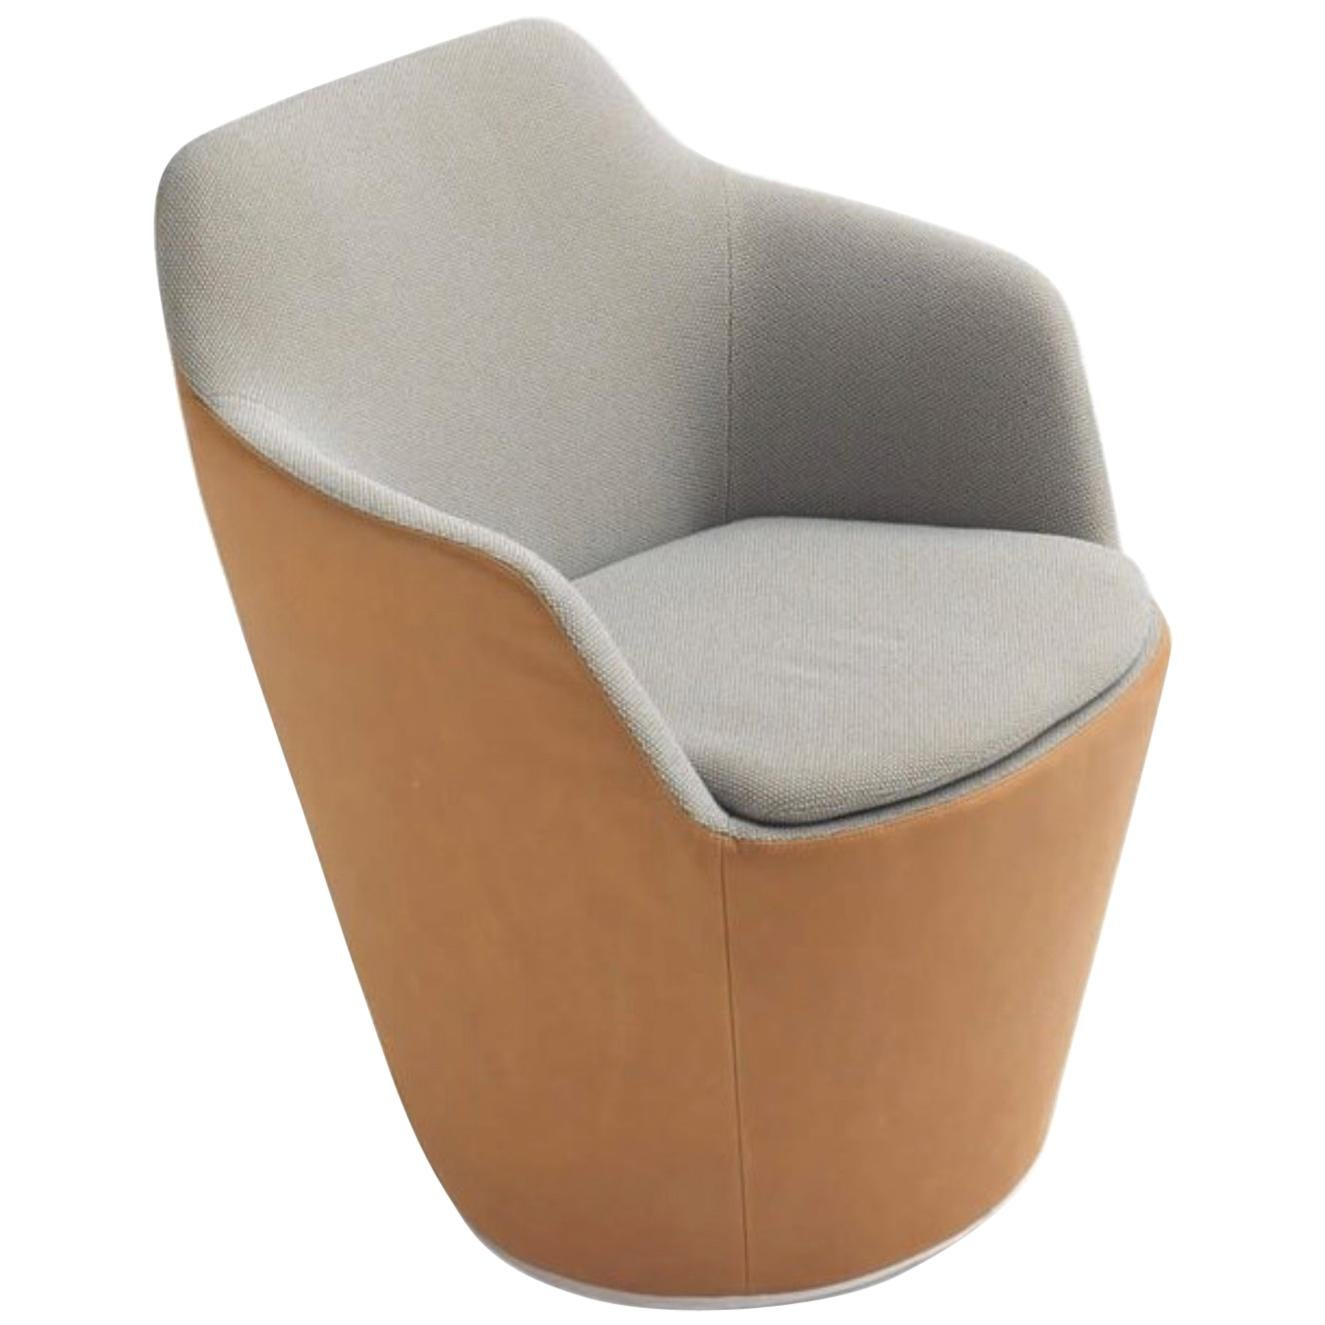 revolving easy chair mart stam flint armchair by jehs and laub in fabric or leather for cor sale